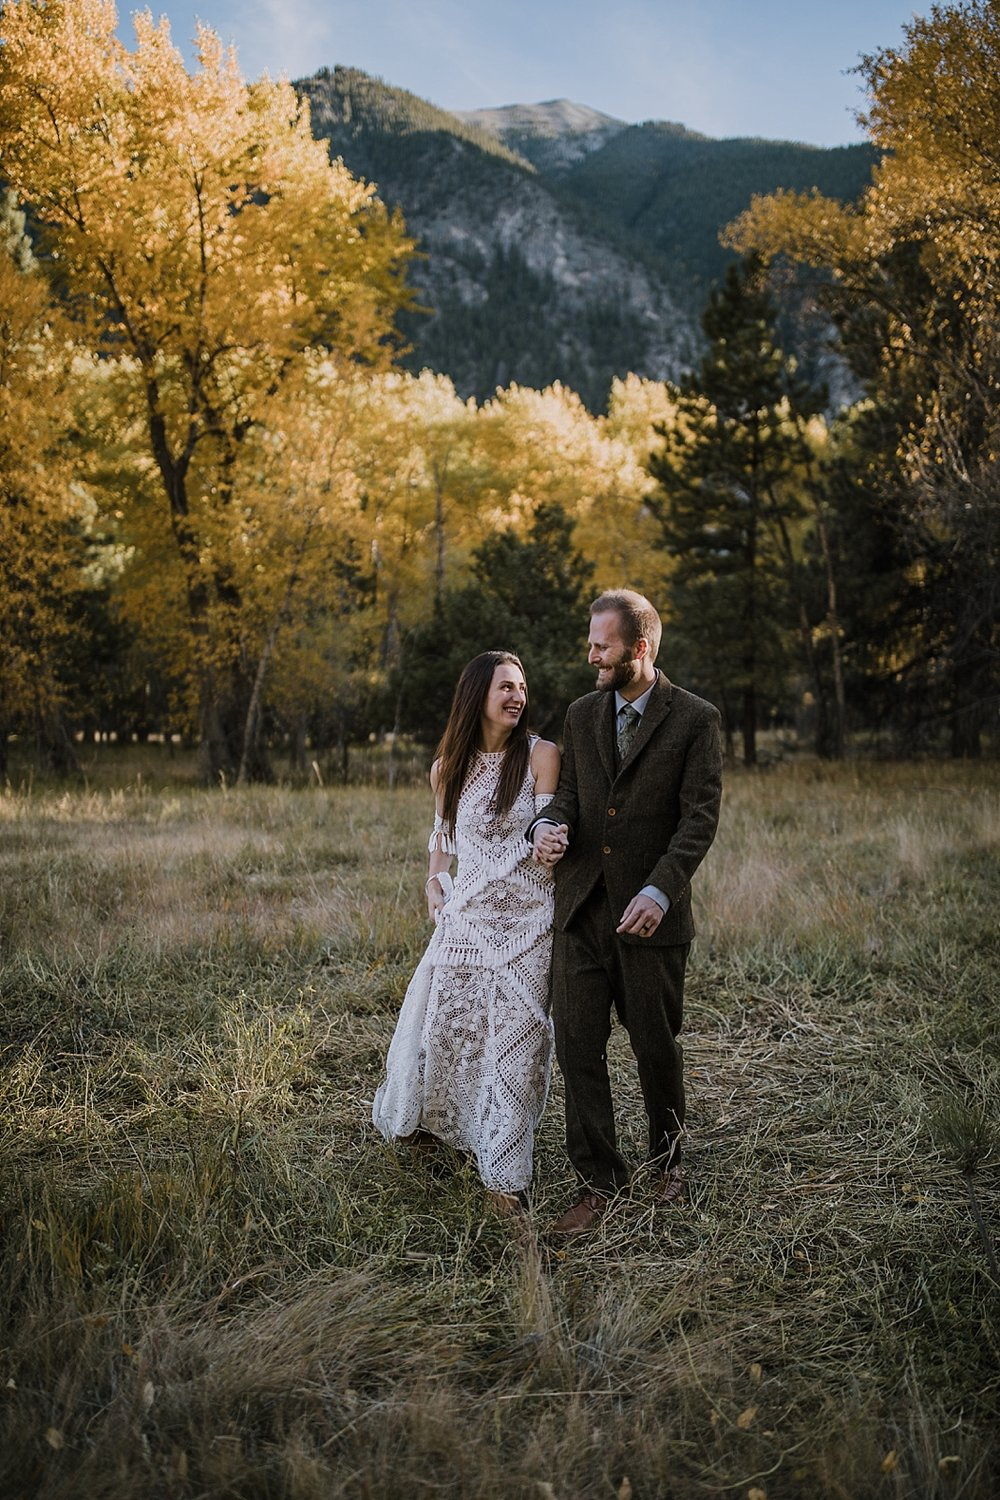 couple walking, norway elopement, post elopement celebration, wedding in the woods, buena vista elopement, buena vista wedding, nathrop colorado wedding, adventurous colorado elopement, farmers market